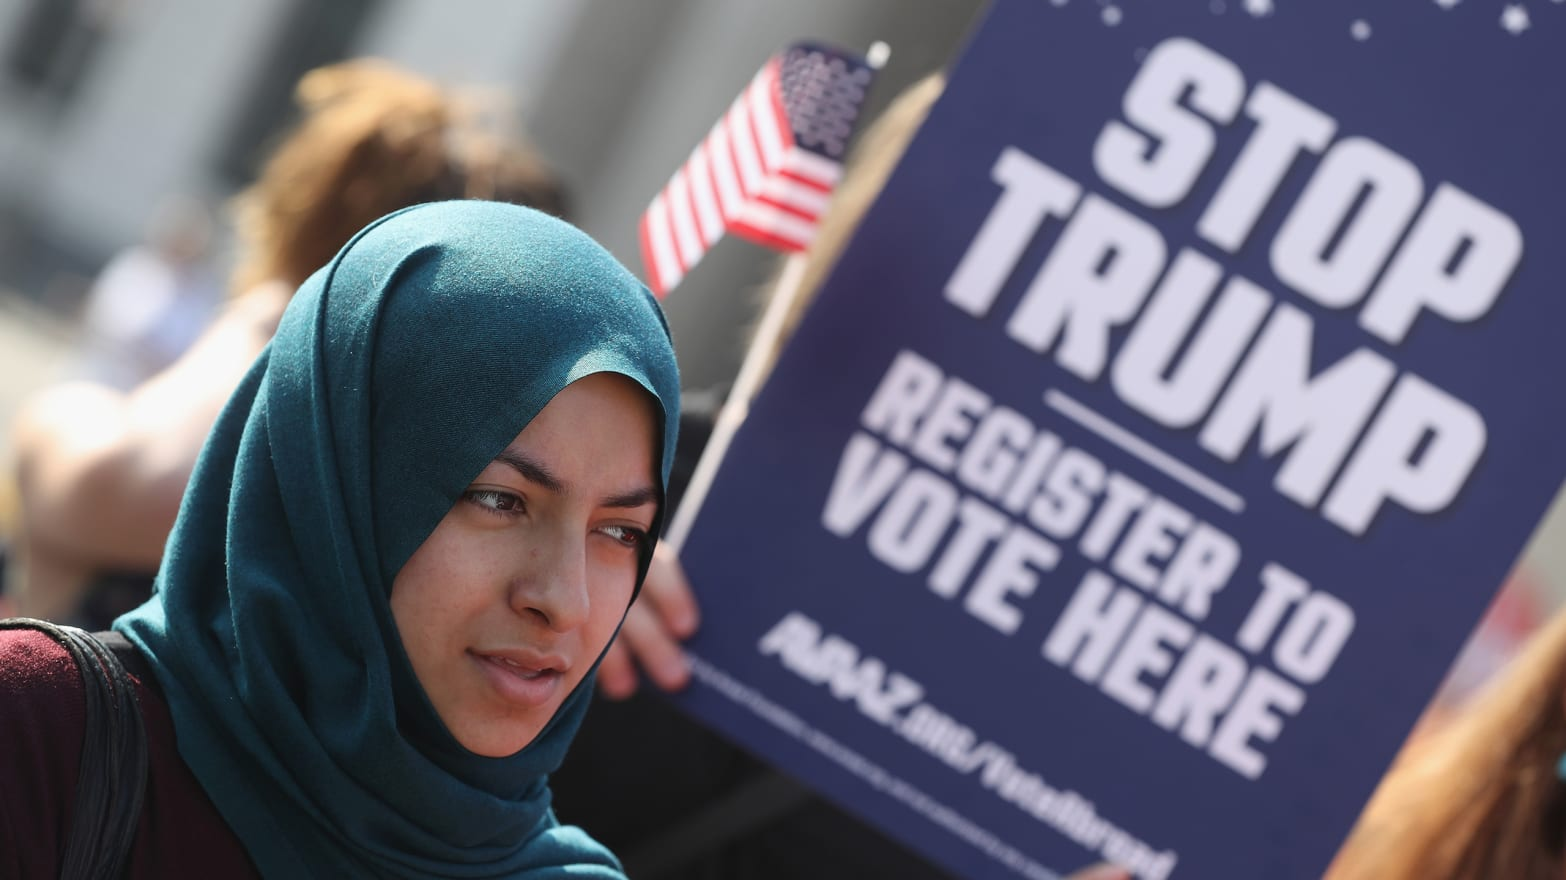 Starting Today, the Muslims Are Coming—to Vote!